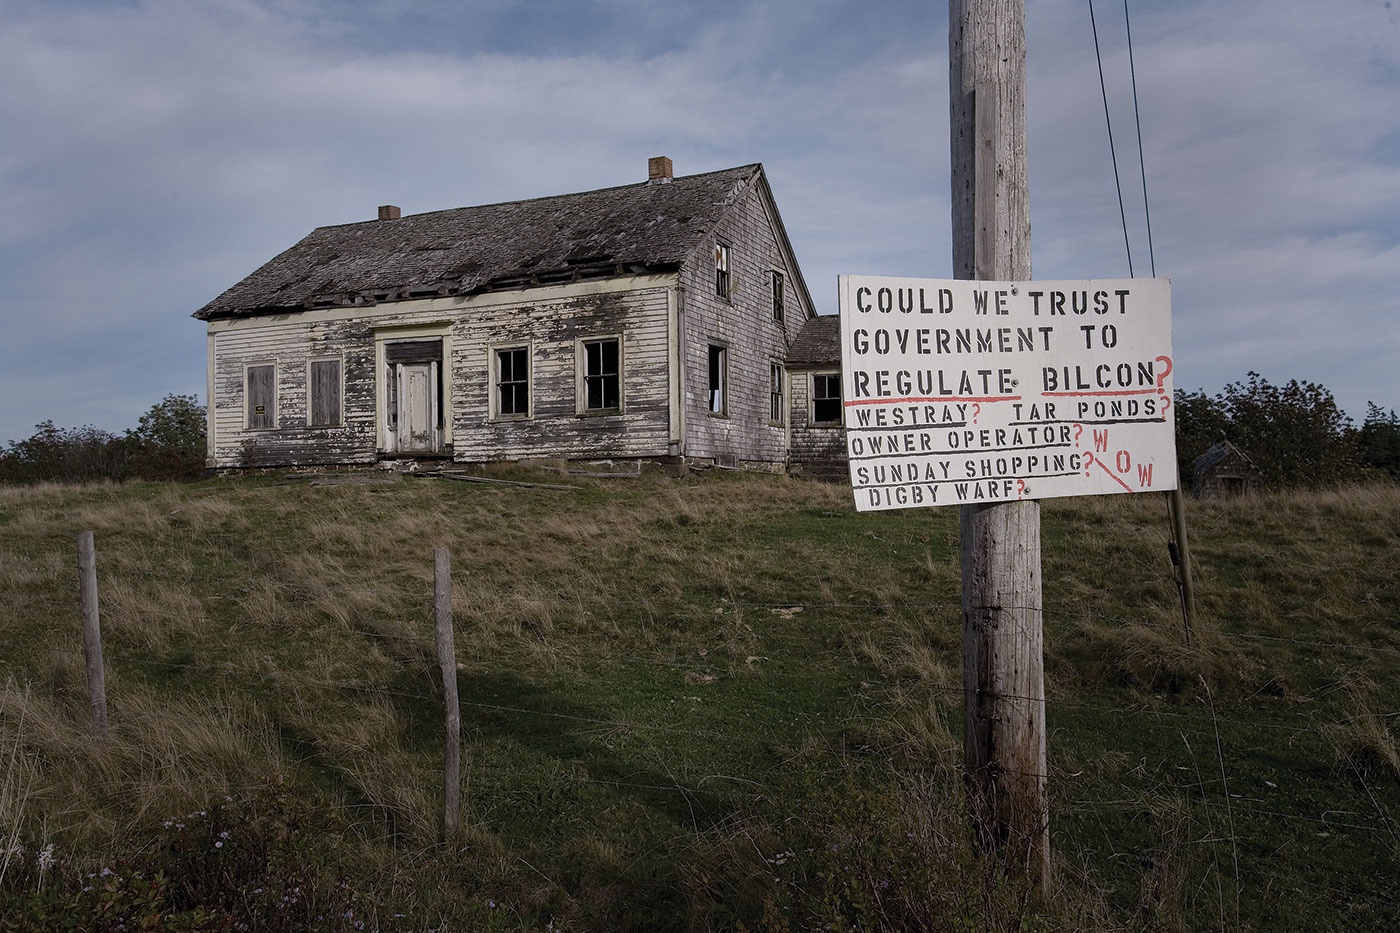 A protest sign sits in front of an abandoned home in rural Digby, Nova Scotia. During the five plus years that the environmental assessment was being conducted on the project, signs such as these, mostly against, but some in support of, Bilcon's plans, littered the otherwise quiet rural region. Today, some of these signs still stand, as the NAFTA Tribunal's award has yet to be finalized. Photo by Russel Monk licensed under the Creative Commons Attribution-Share Alike 2.0 generic license